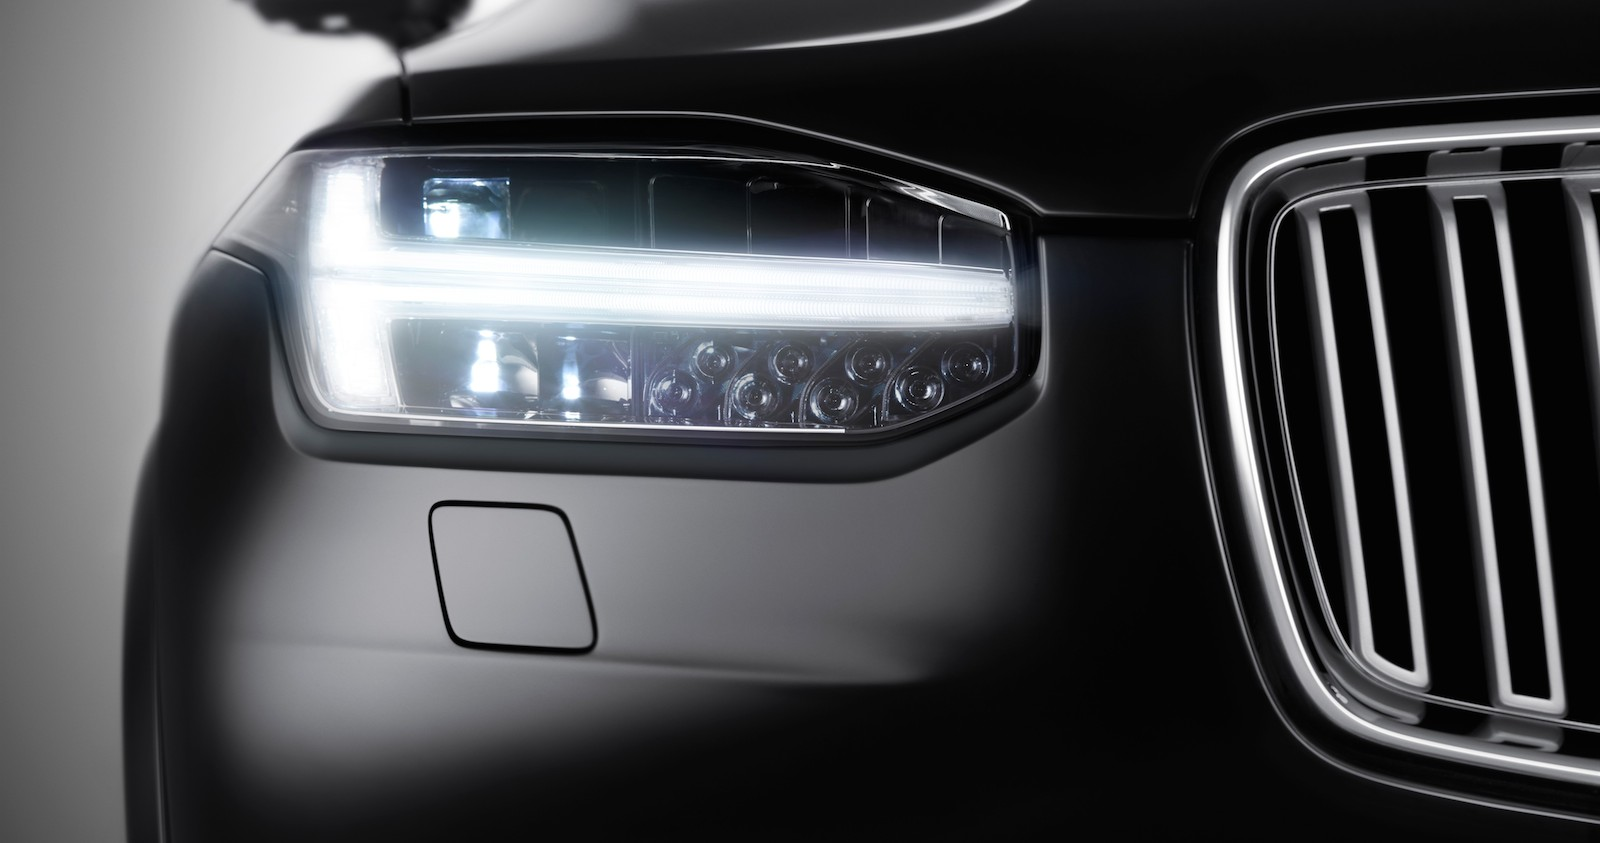 2015 Volvo XC90 SUV premieres on August 27th; Teaser Released